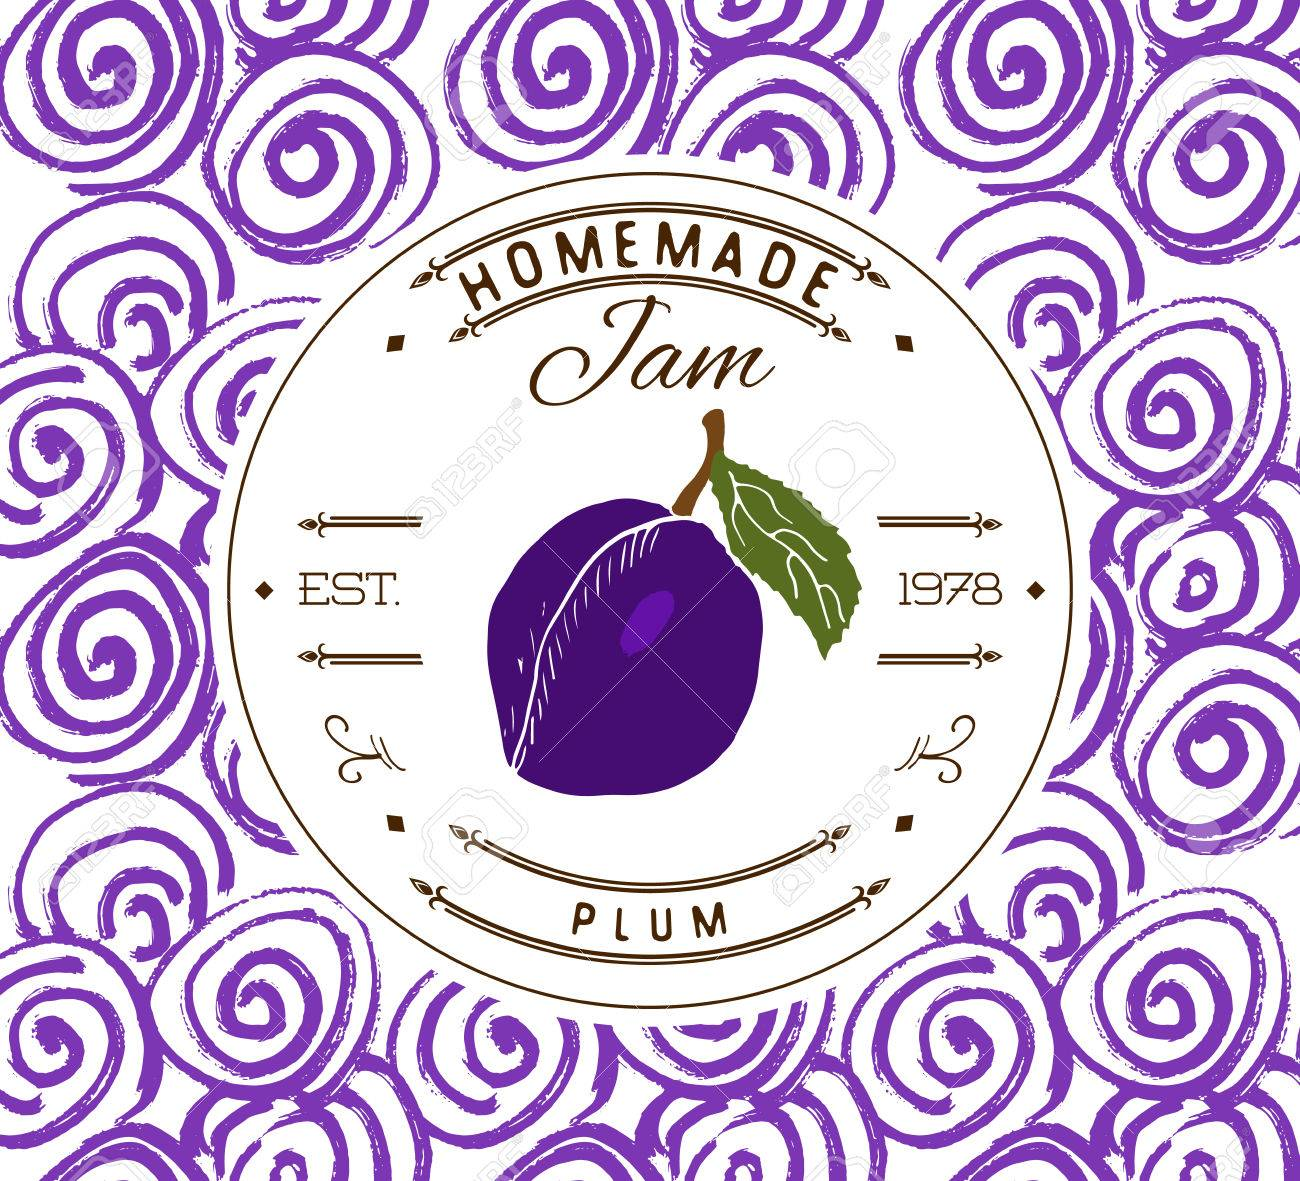 Jam label design template. for plum dessert product with hand drawn sketched fruit and background. Doodle vector plum illustration brand identity. - 51121835